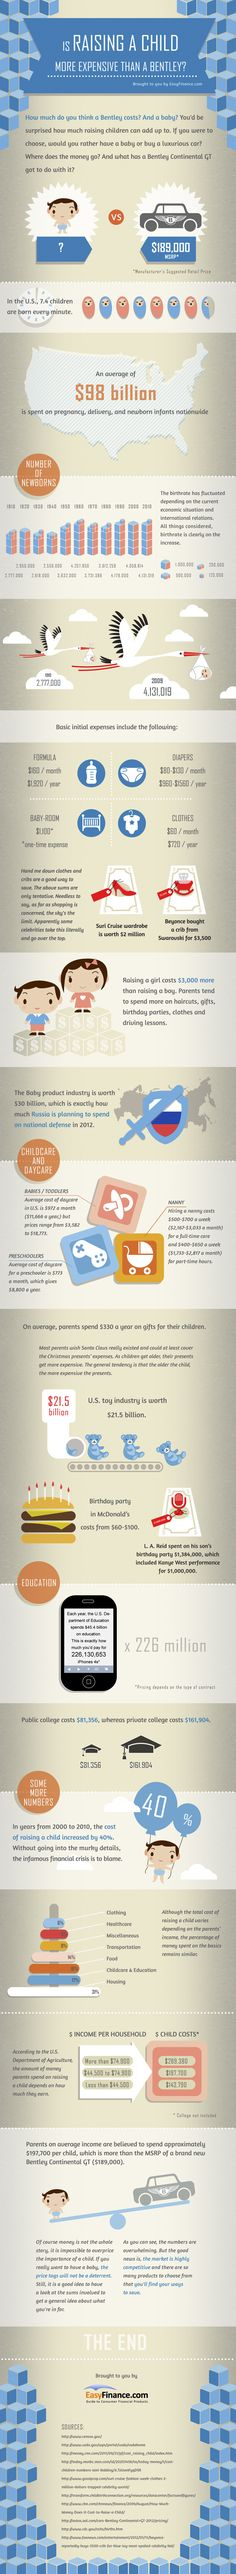 Is raising a child more expensive than a bentley?